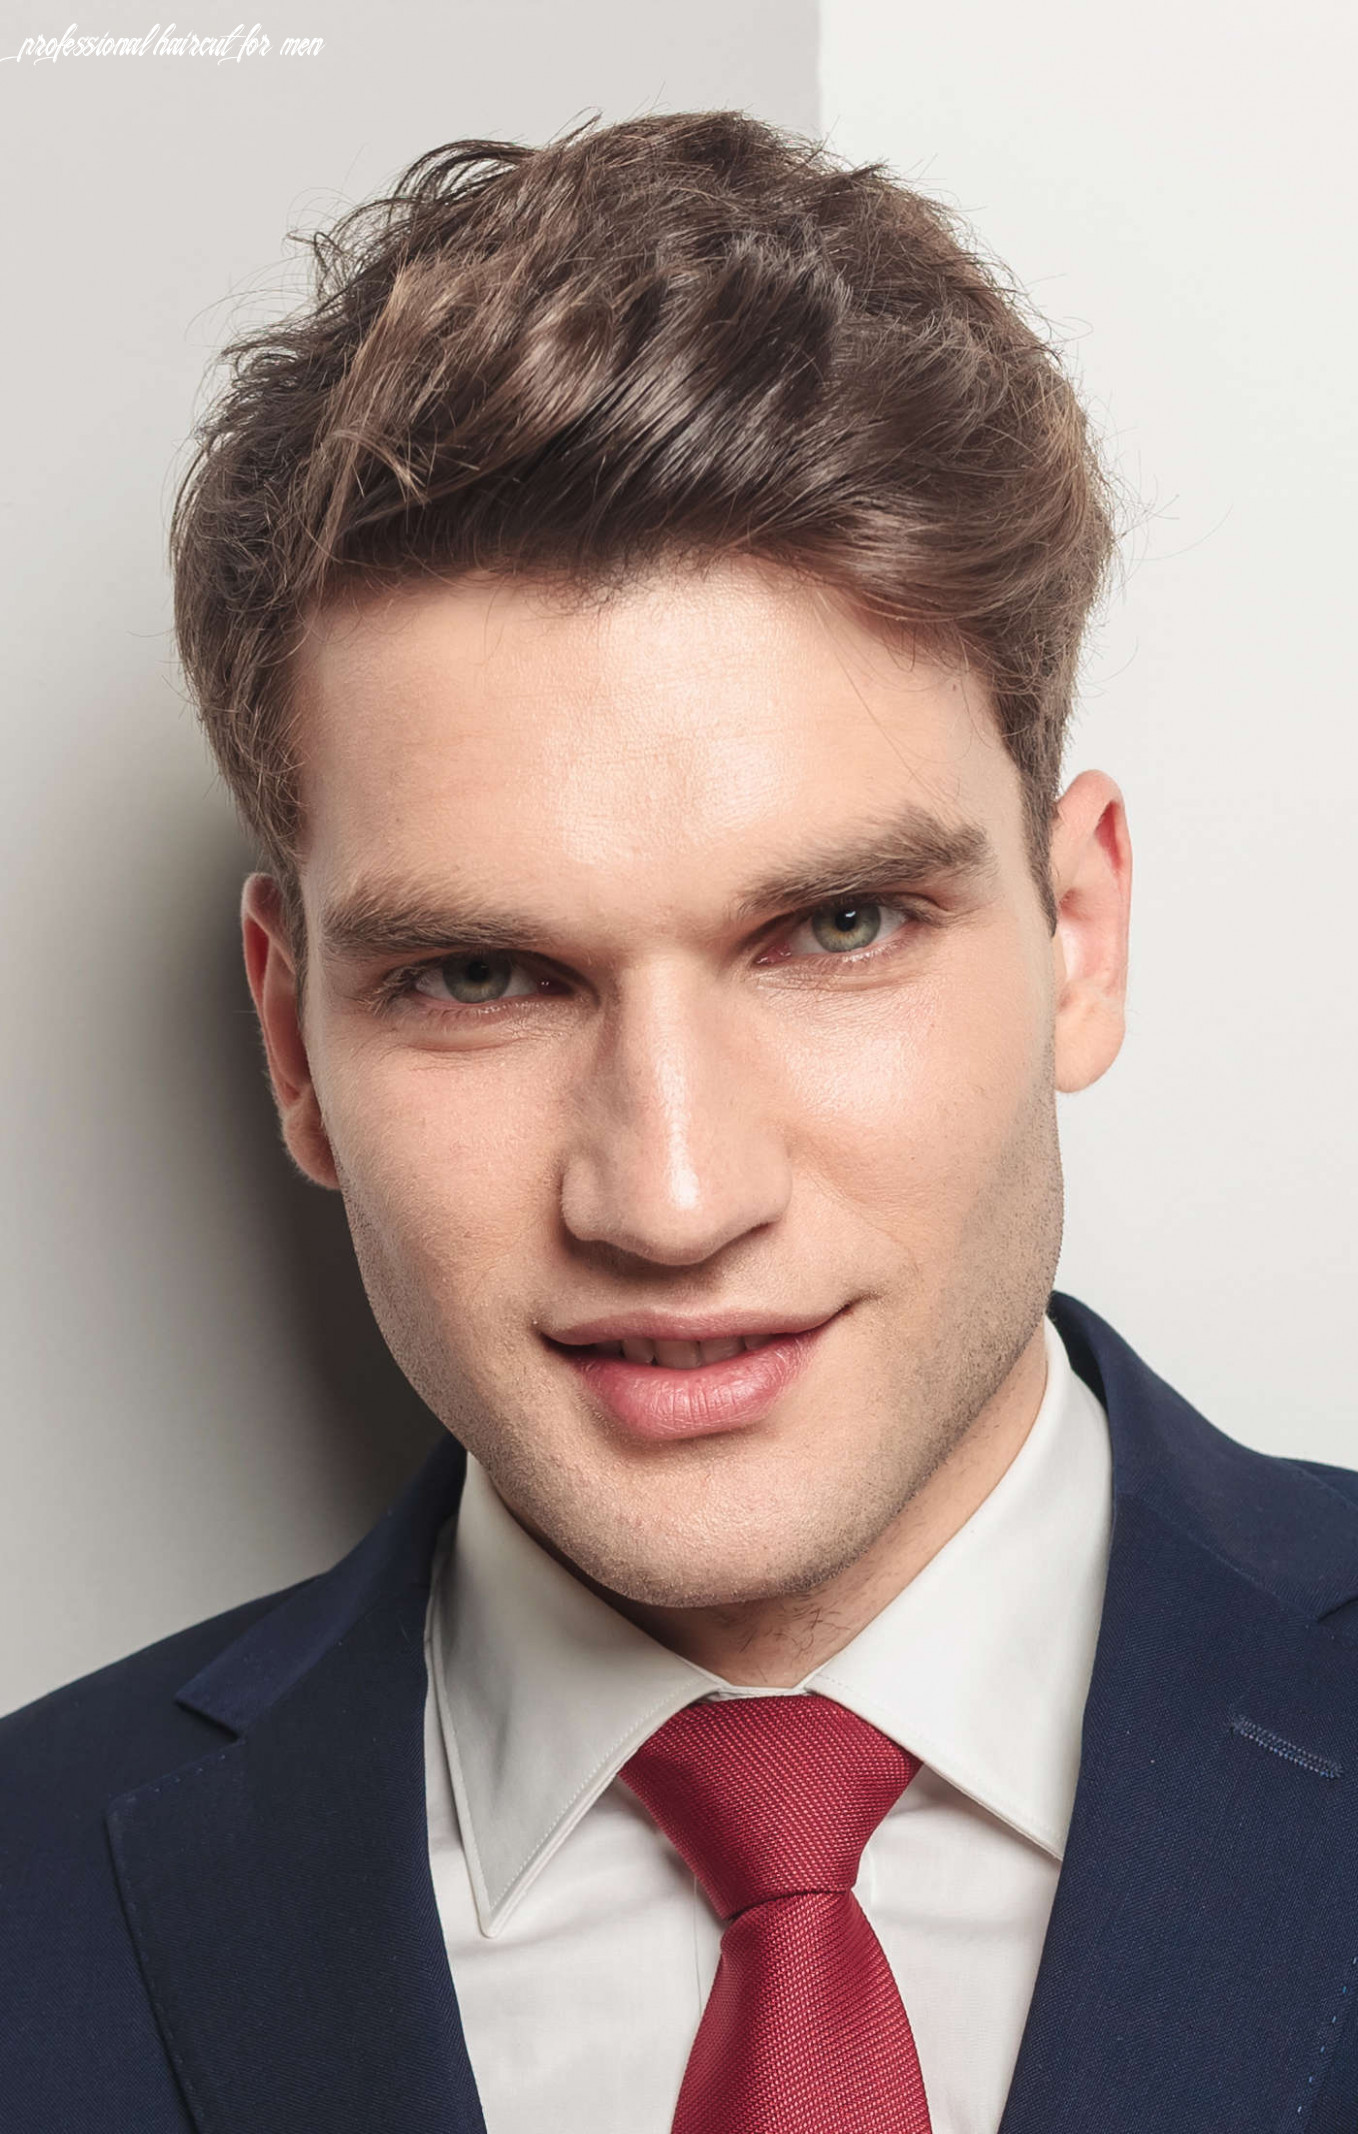 Top 8 business hairstyles for men professional haircut for men